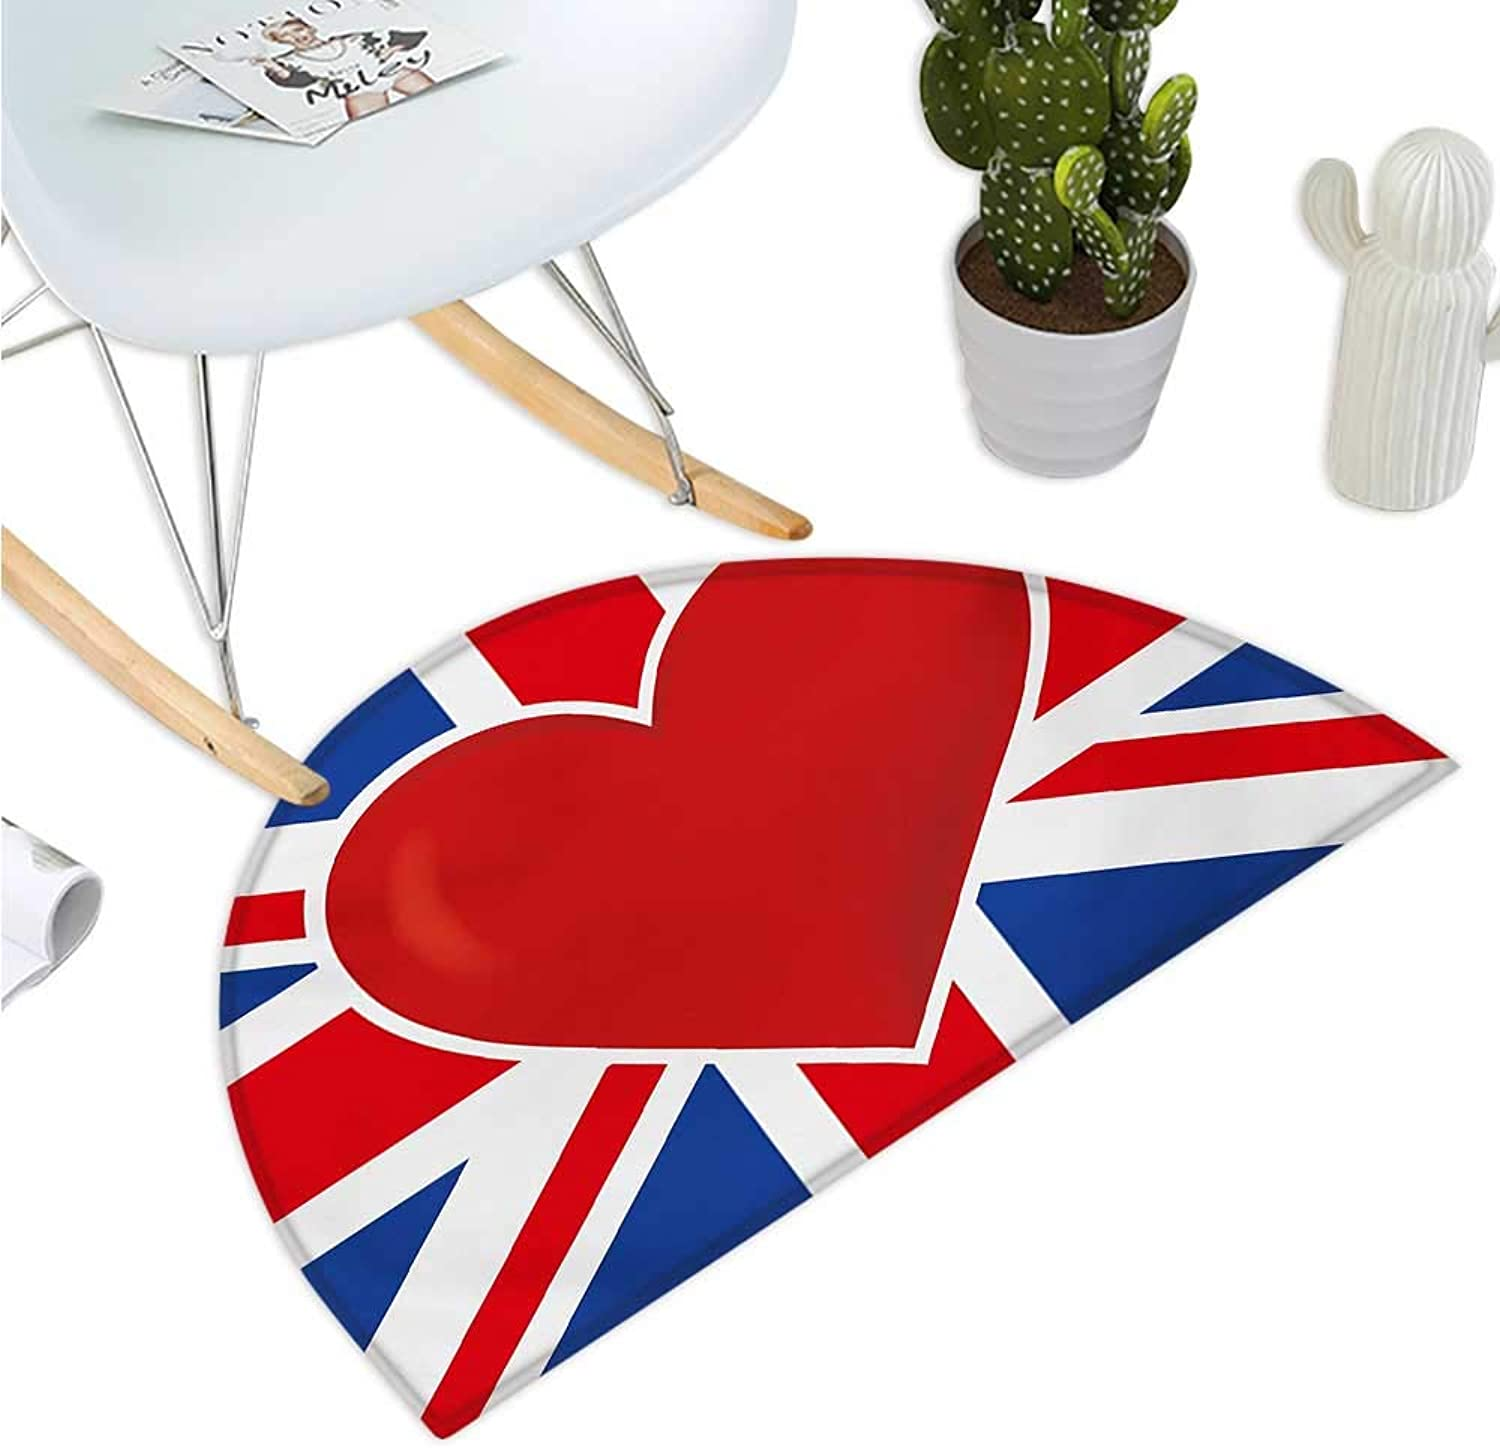 Union Jack Semicircular Cushion British Flag with a Big Red Heart in Center Nationality Pride Concept Entry Door Mat H 39.3  xD 59  Royal bluee Red White